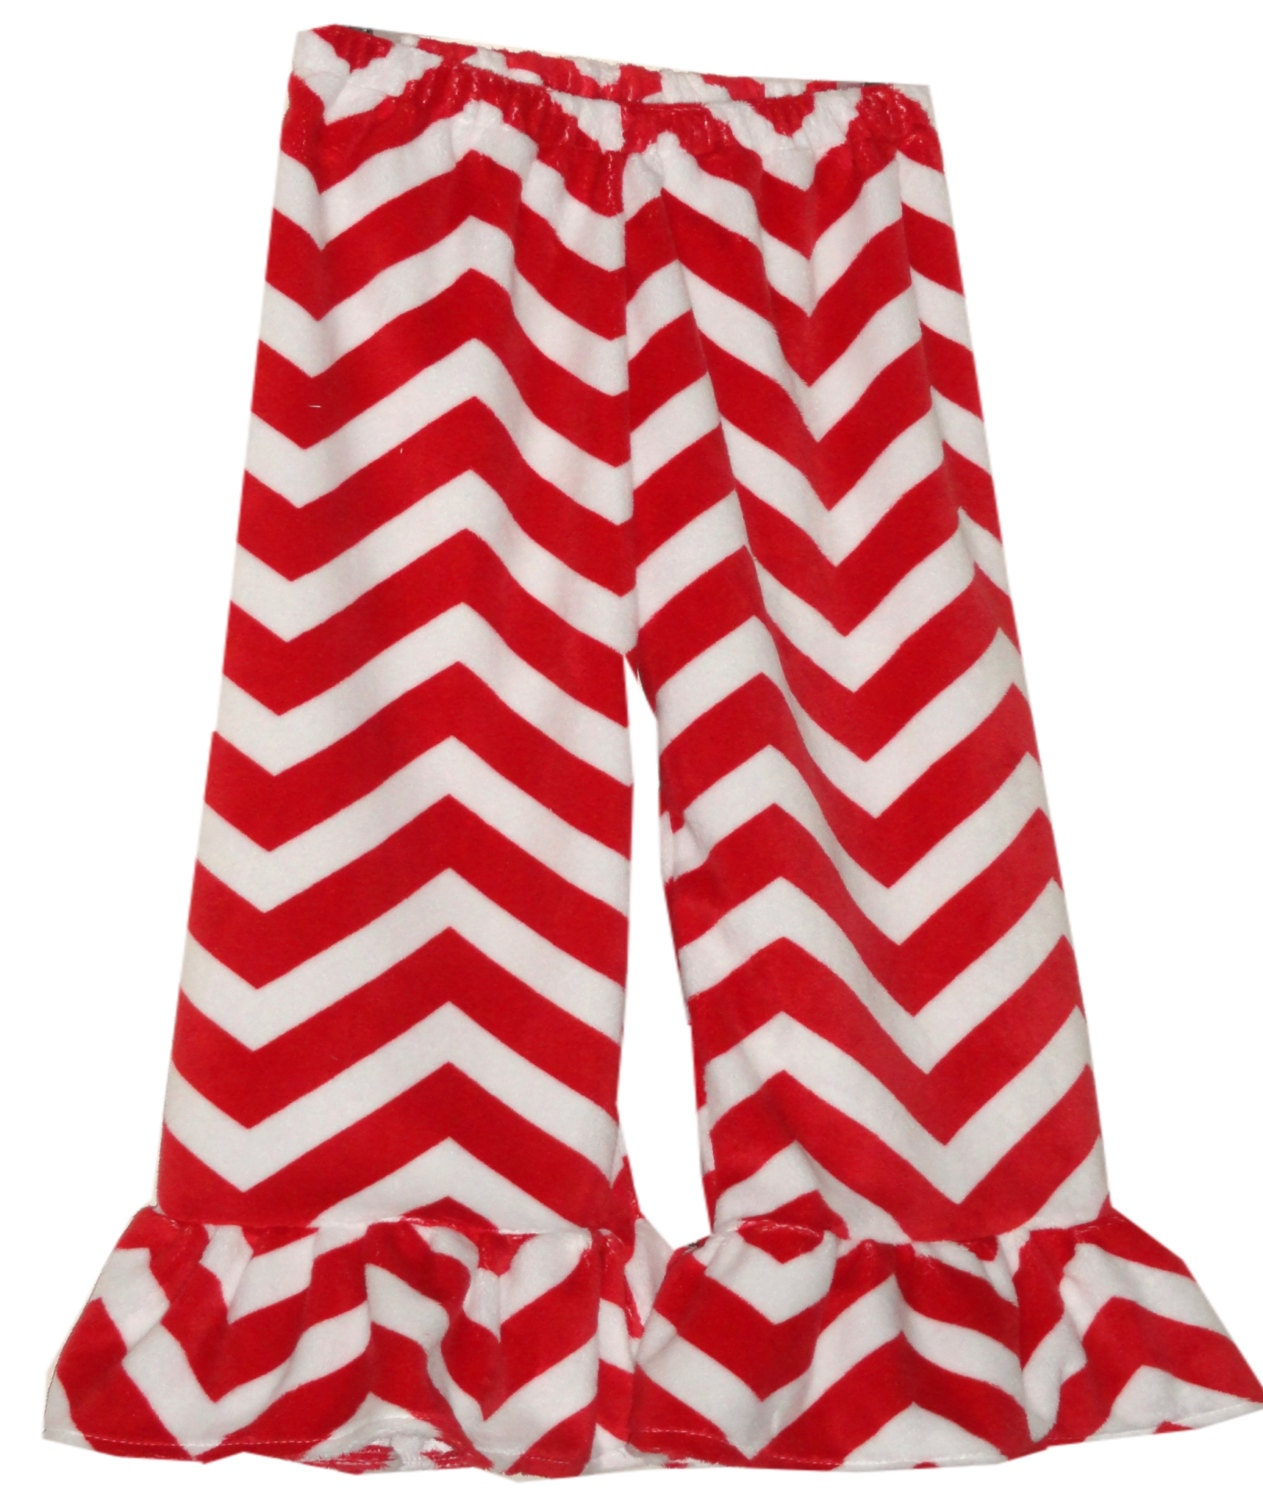 Girls Chevron Minky Ruffle Pants red white sizes 12m 2t 3t 4t 5t 6 7 8 10 - Amievoltaire